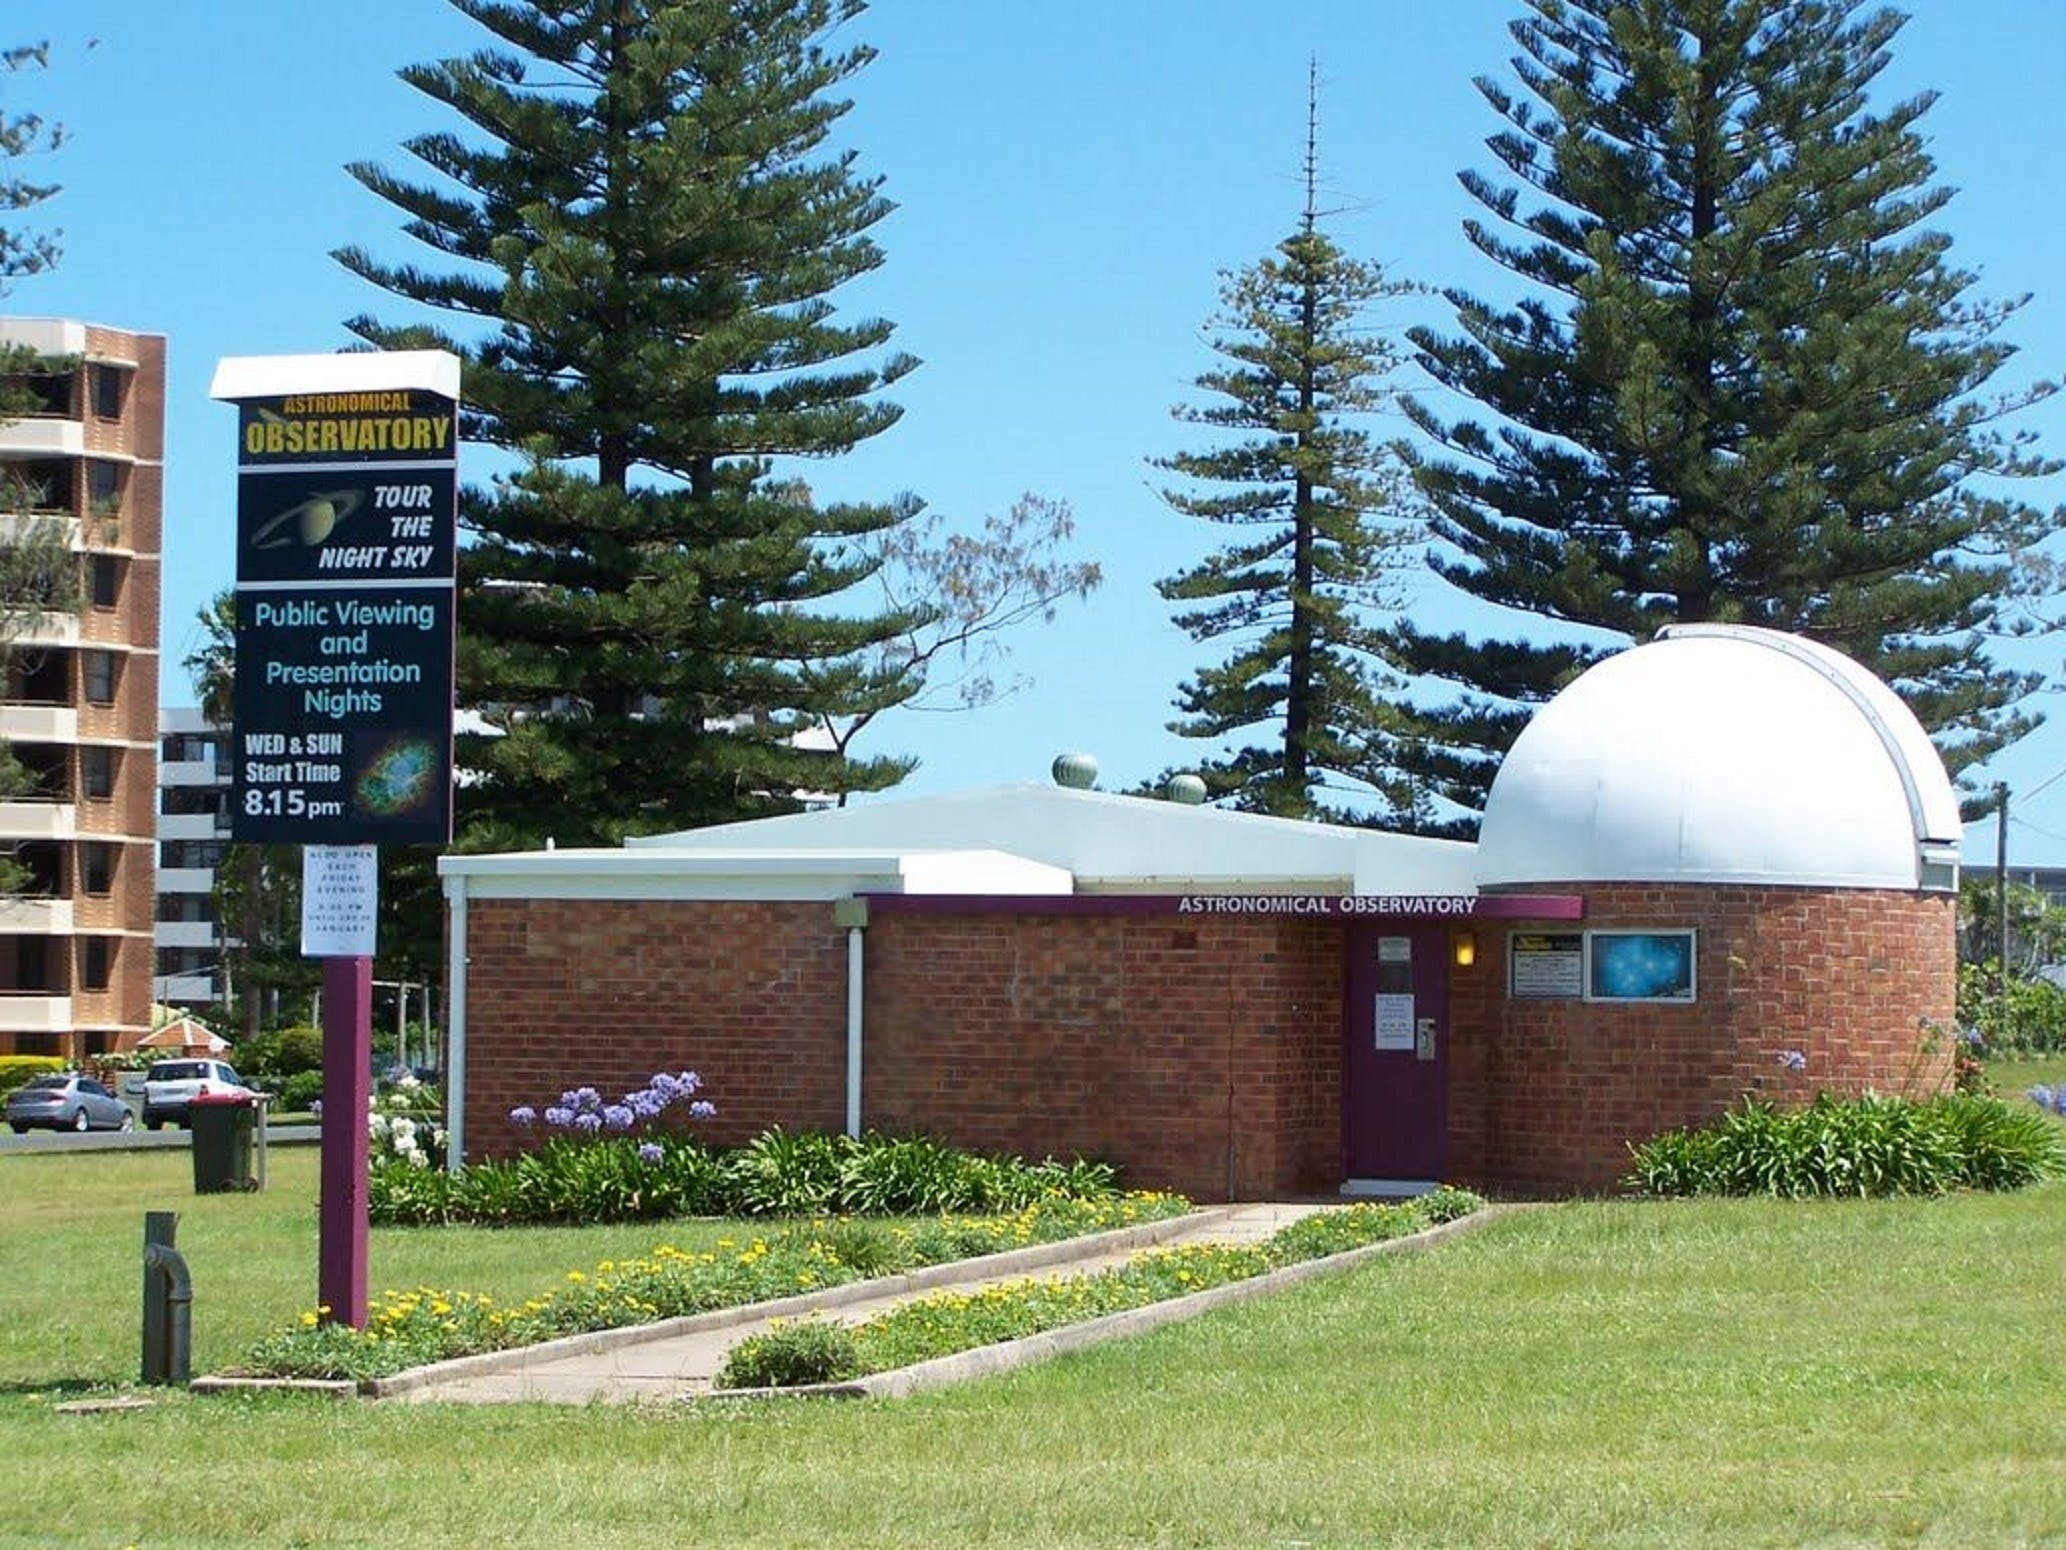 Port Macquarie Astronomical Observatory - VIC Tourism